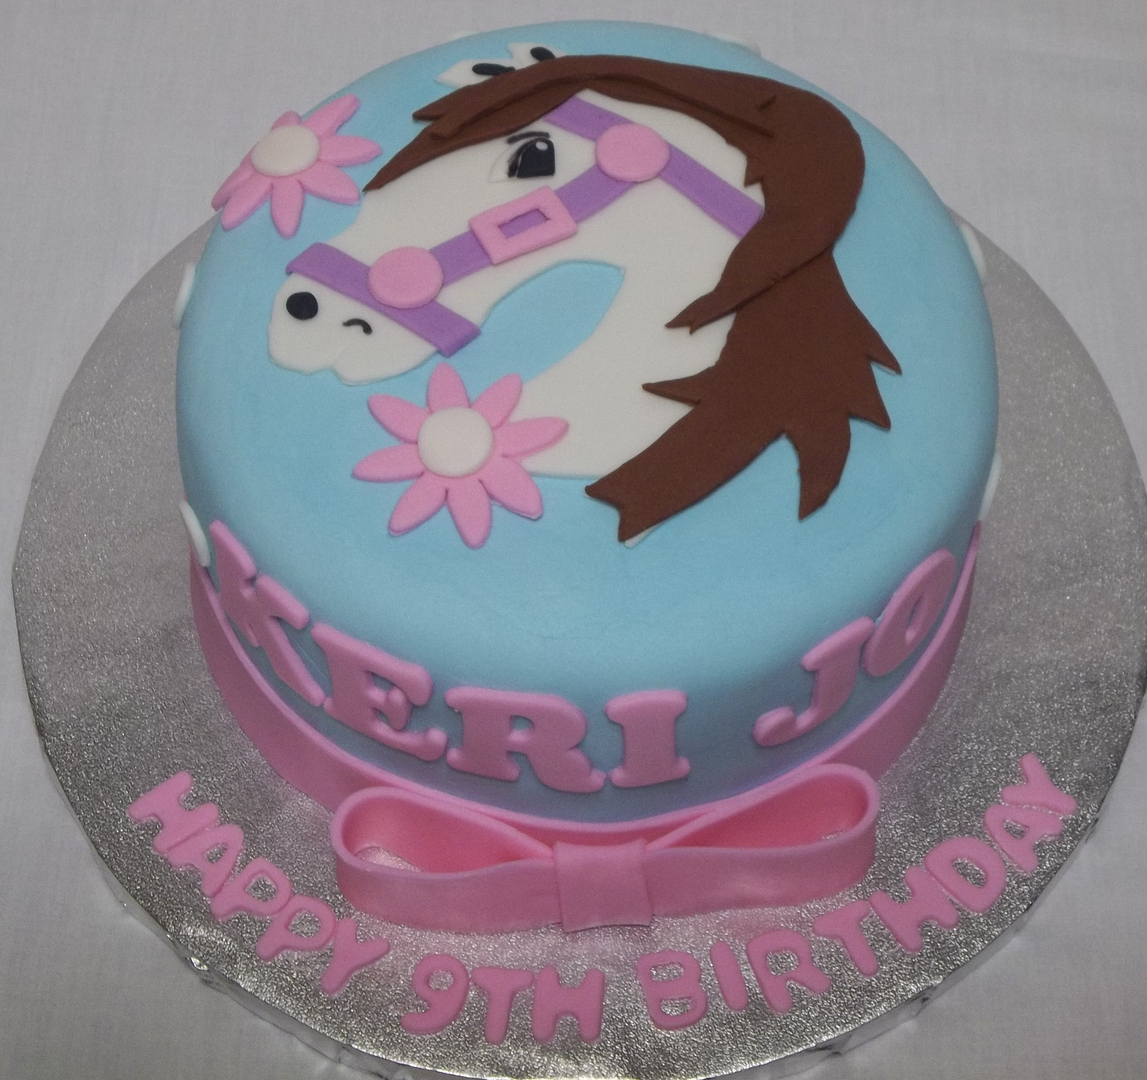 Custom Made Cakes And Cookies In West Western Cakes 2 Sheet Cakes